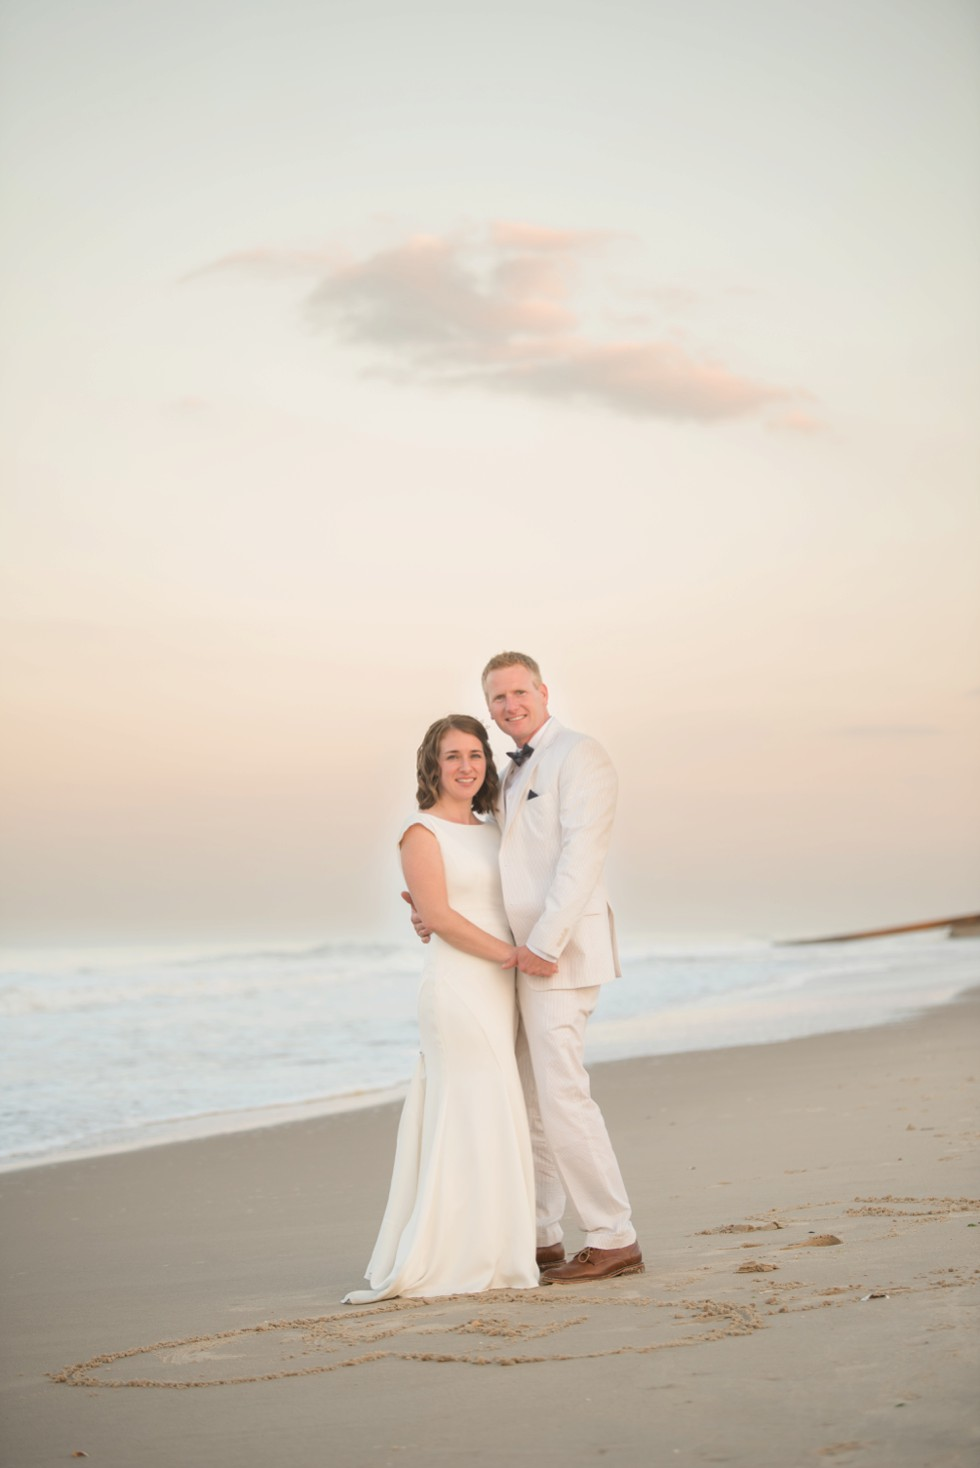 Beach sunset bride and groom